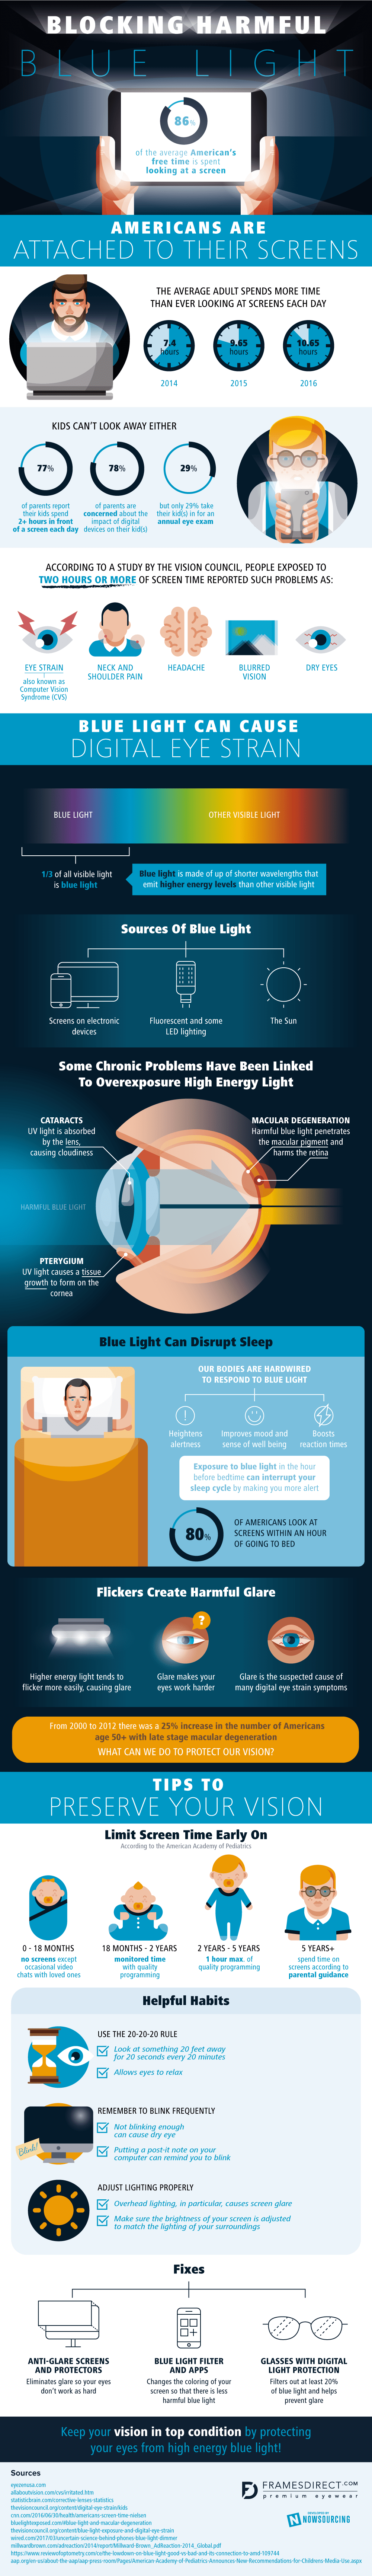 The Affects Of Blue Light On Your Vision - Infographic